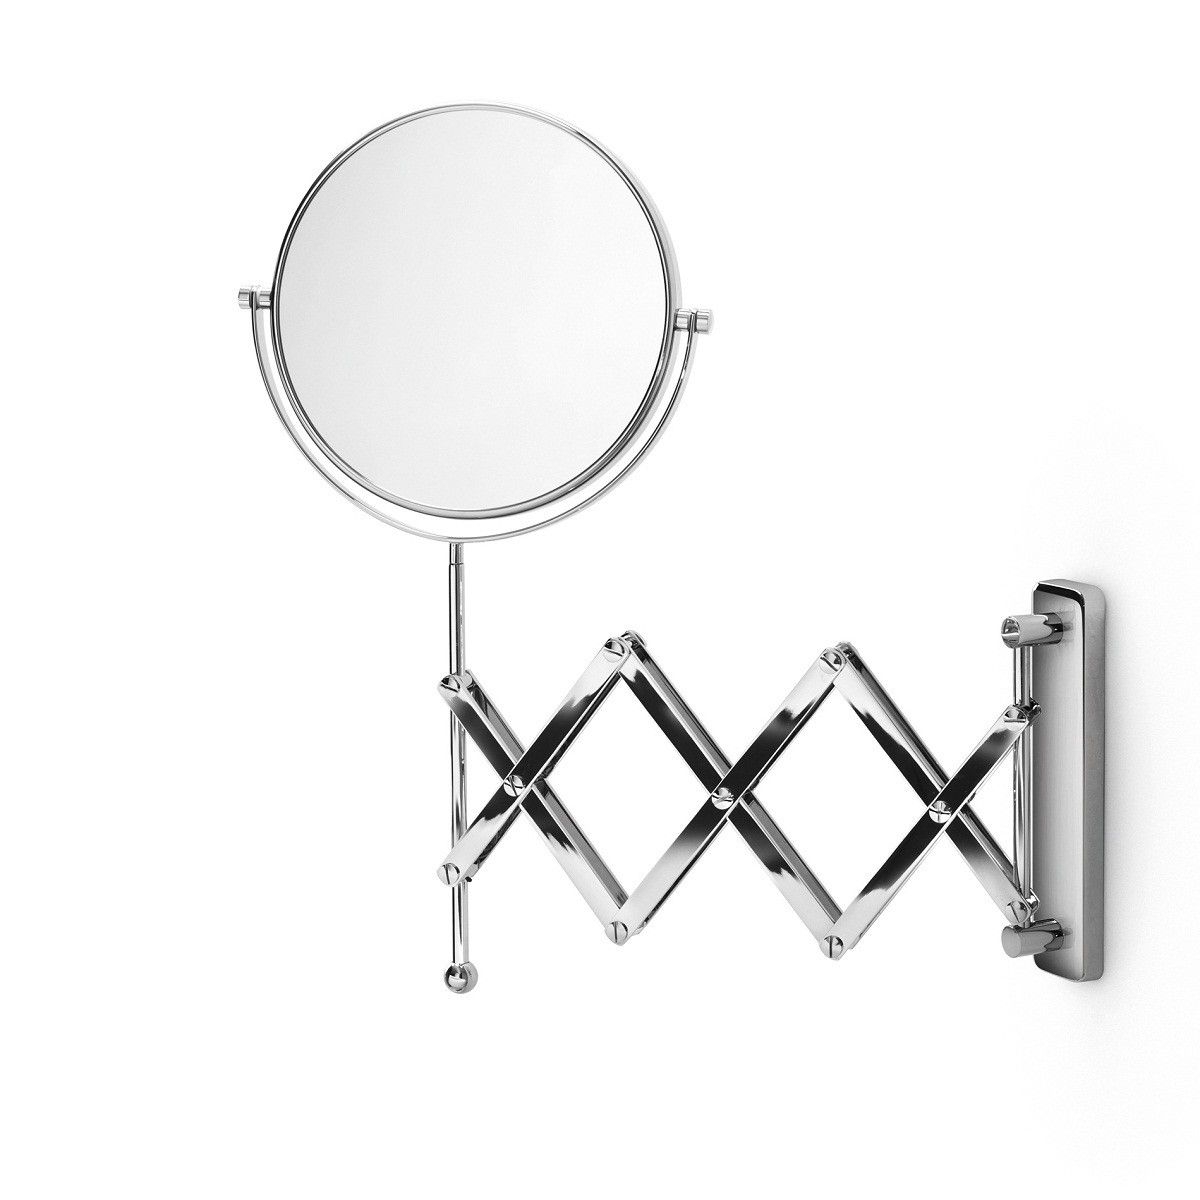 Most Recent Ws Bath Collections Mevedo 55855 Magnifying Mirror 3X From The Inside Accordion Wall Mirrors (View 8 of 20)